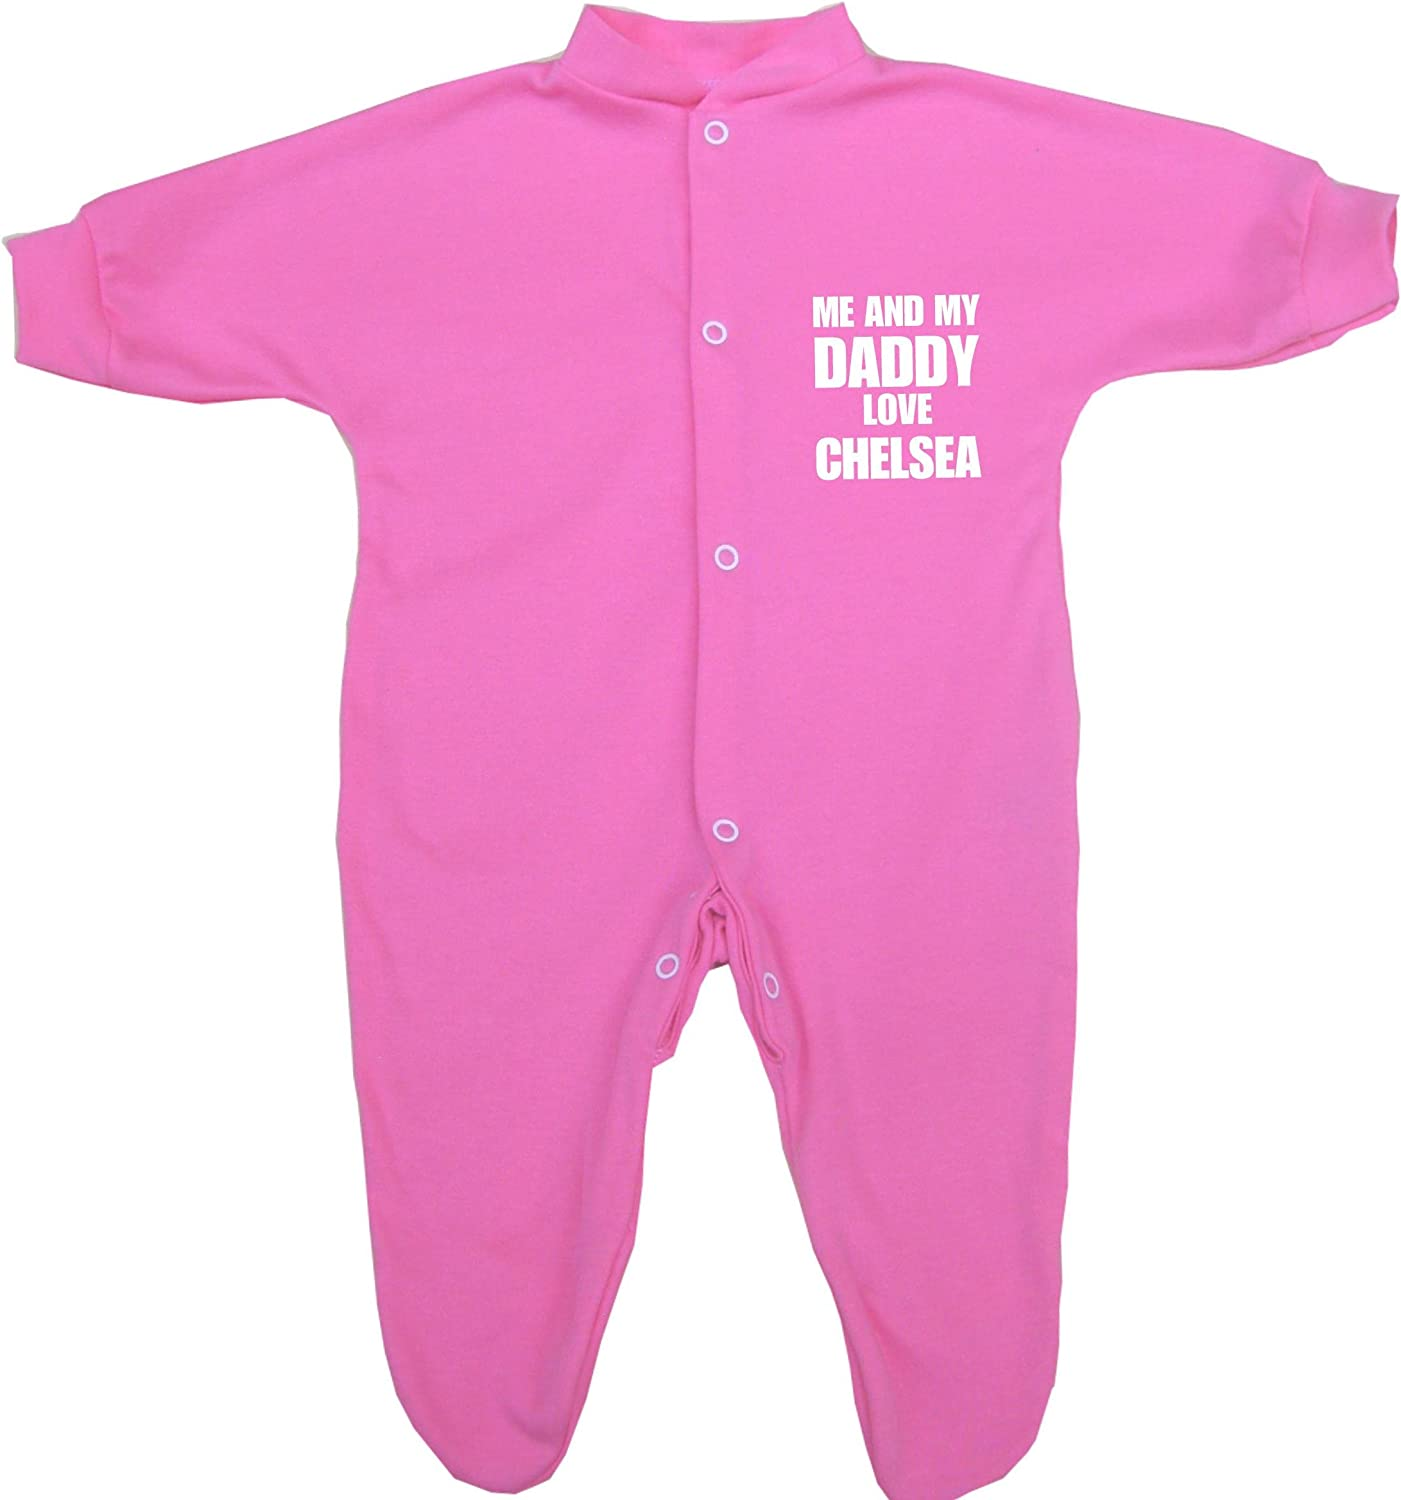 Me and my Dad Love Chelsea Baby Sleepsuit Babygro Newborn 9 mths in 9 Colours